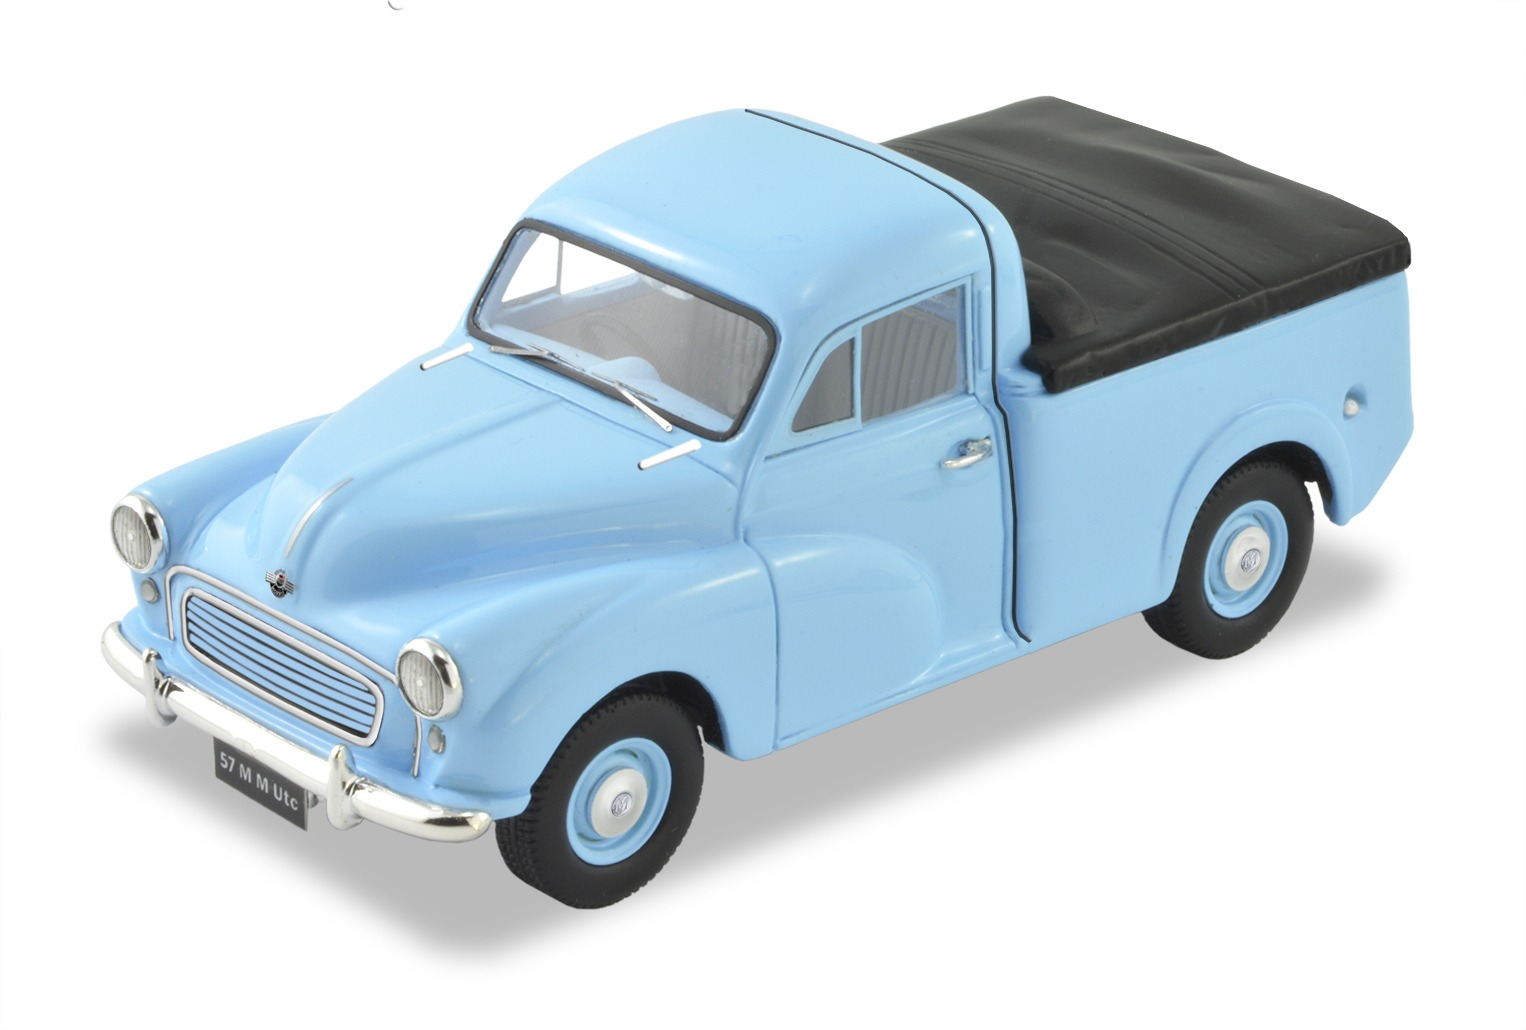 1957 Morris Minor Ute – Panamuna Blue